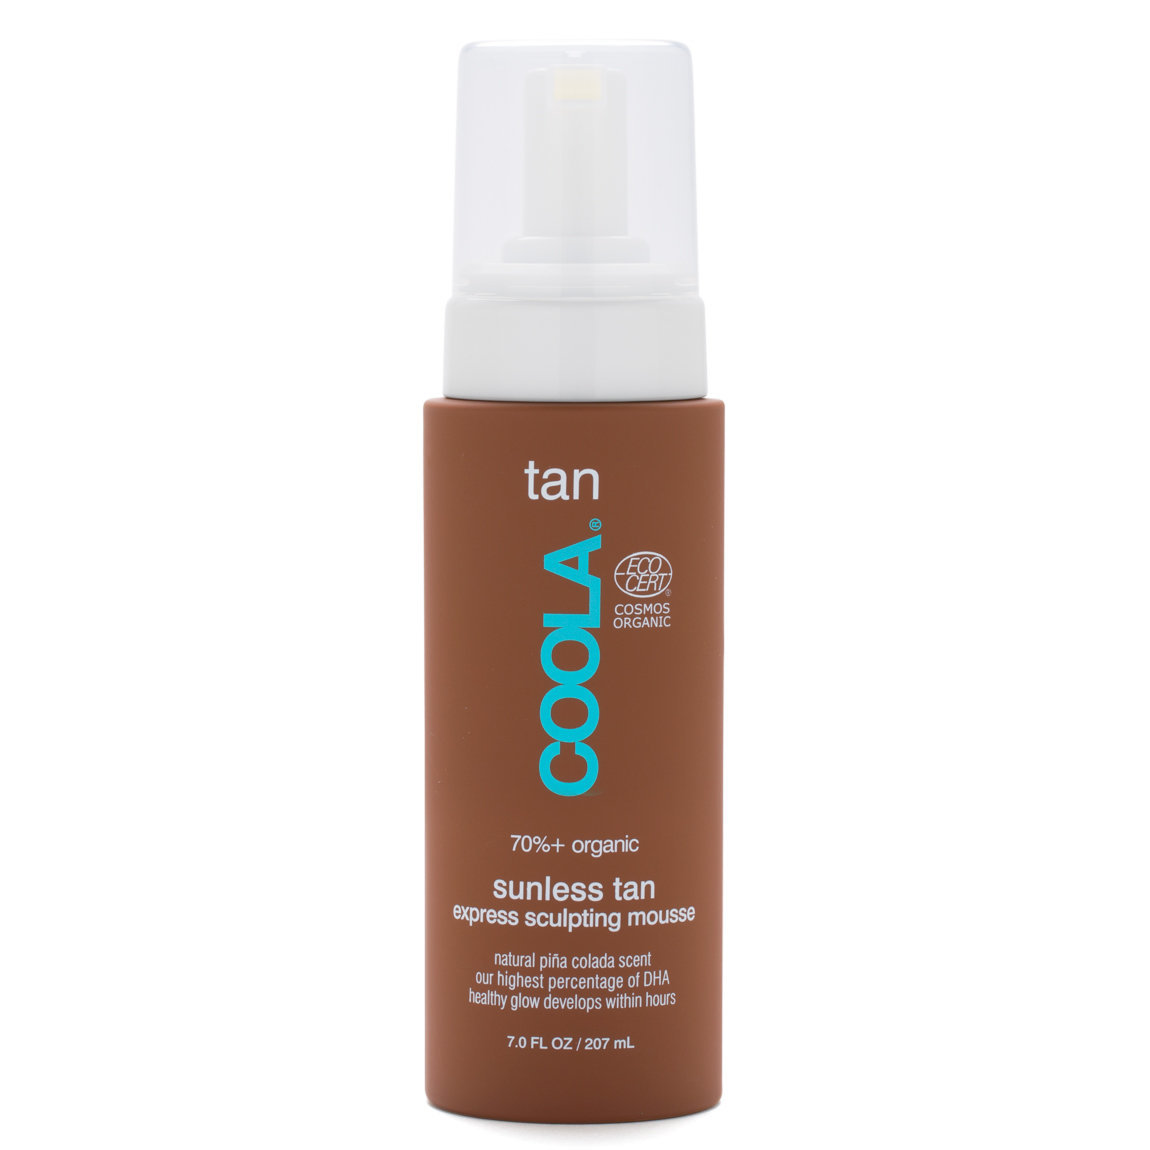 COOLA Gradual Sunless Tan Express Sculpting Mousse product smear.